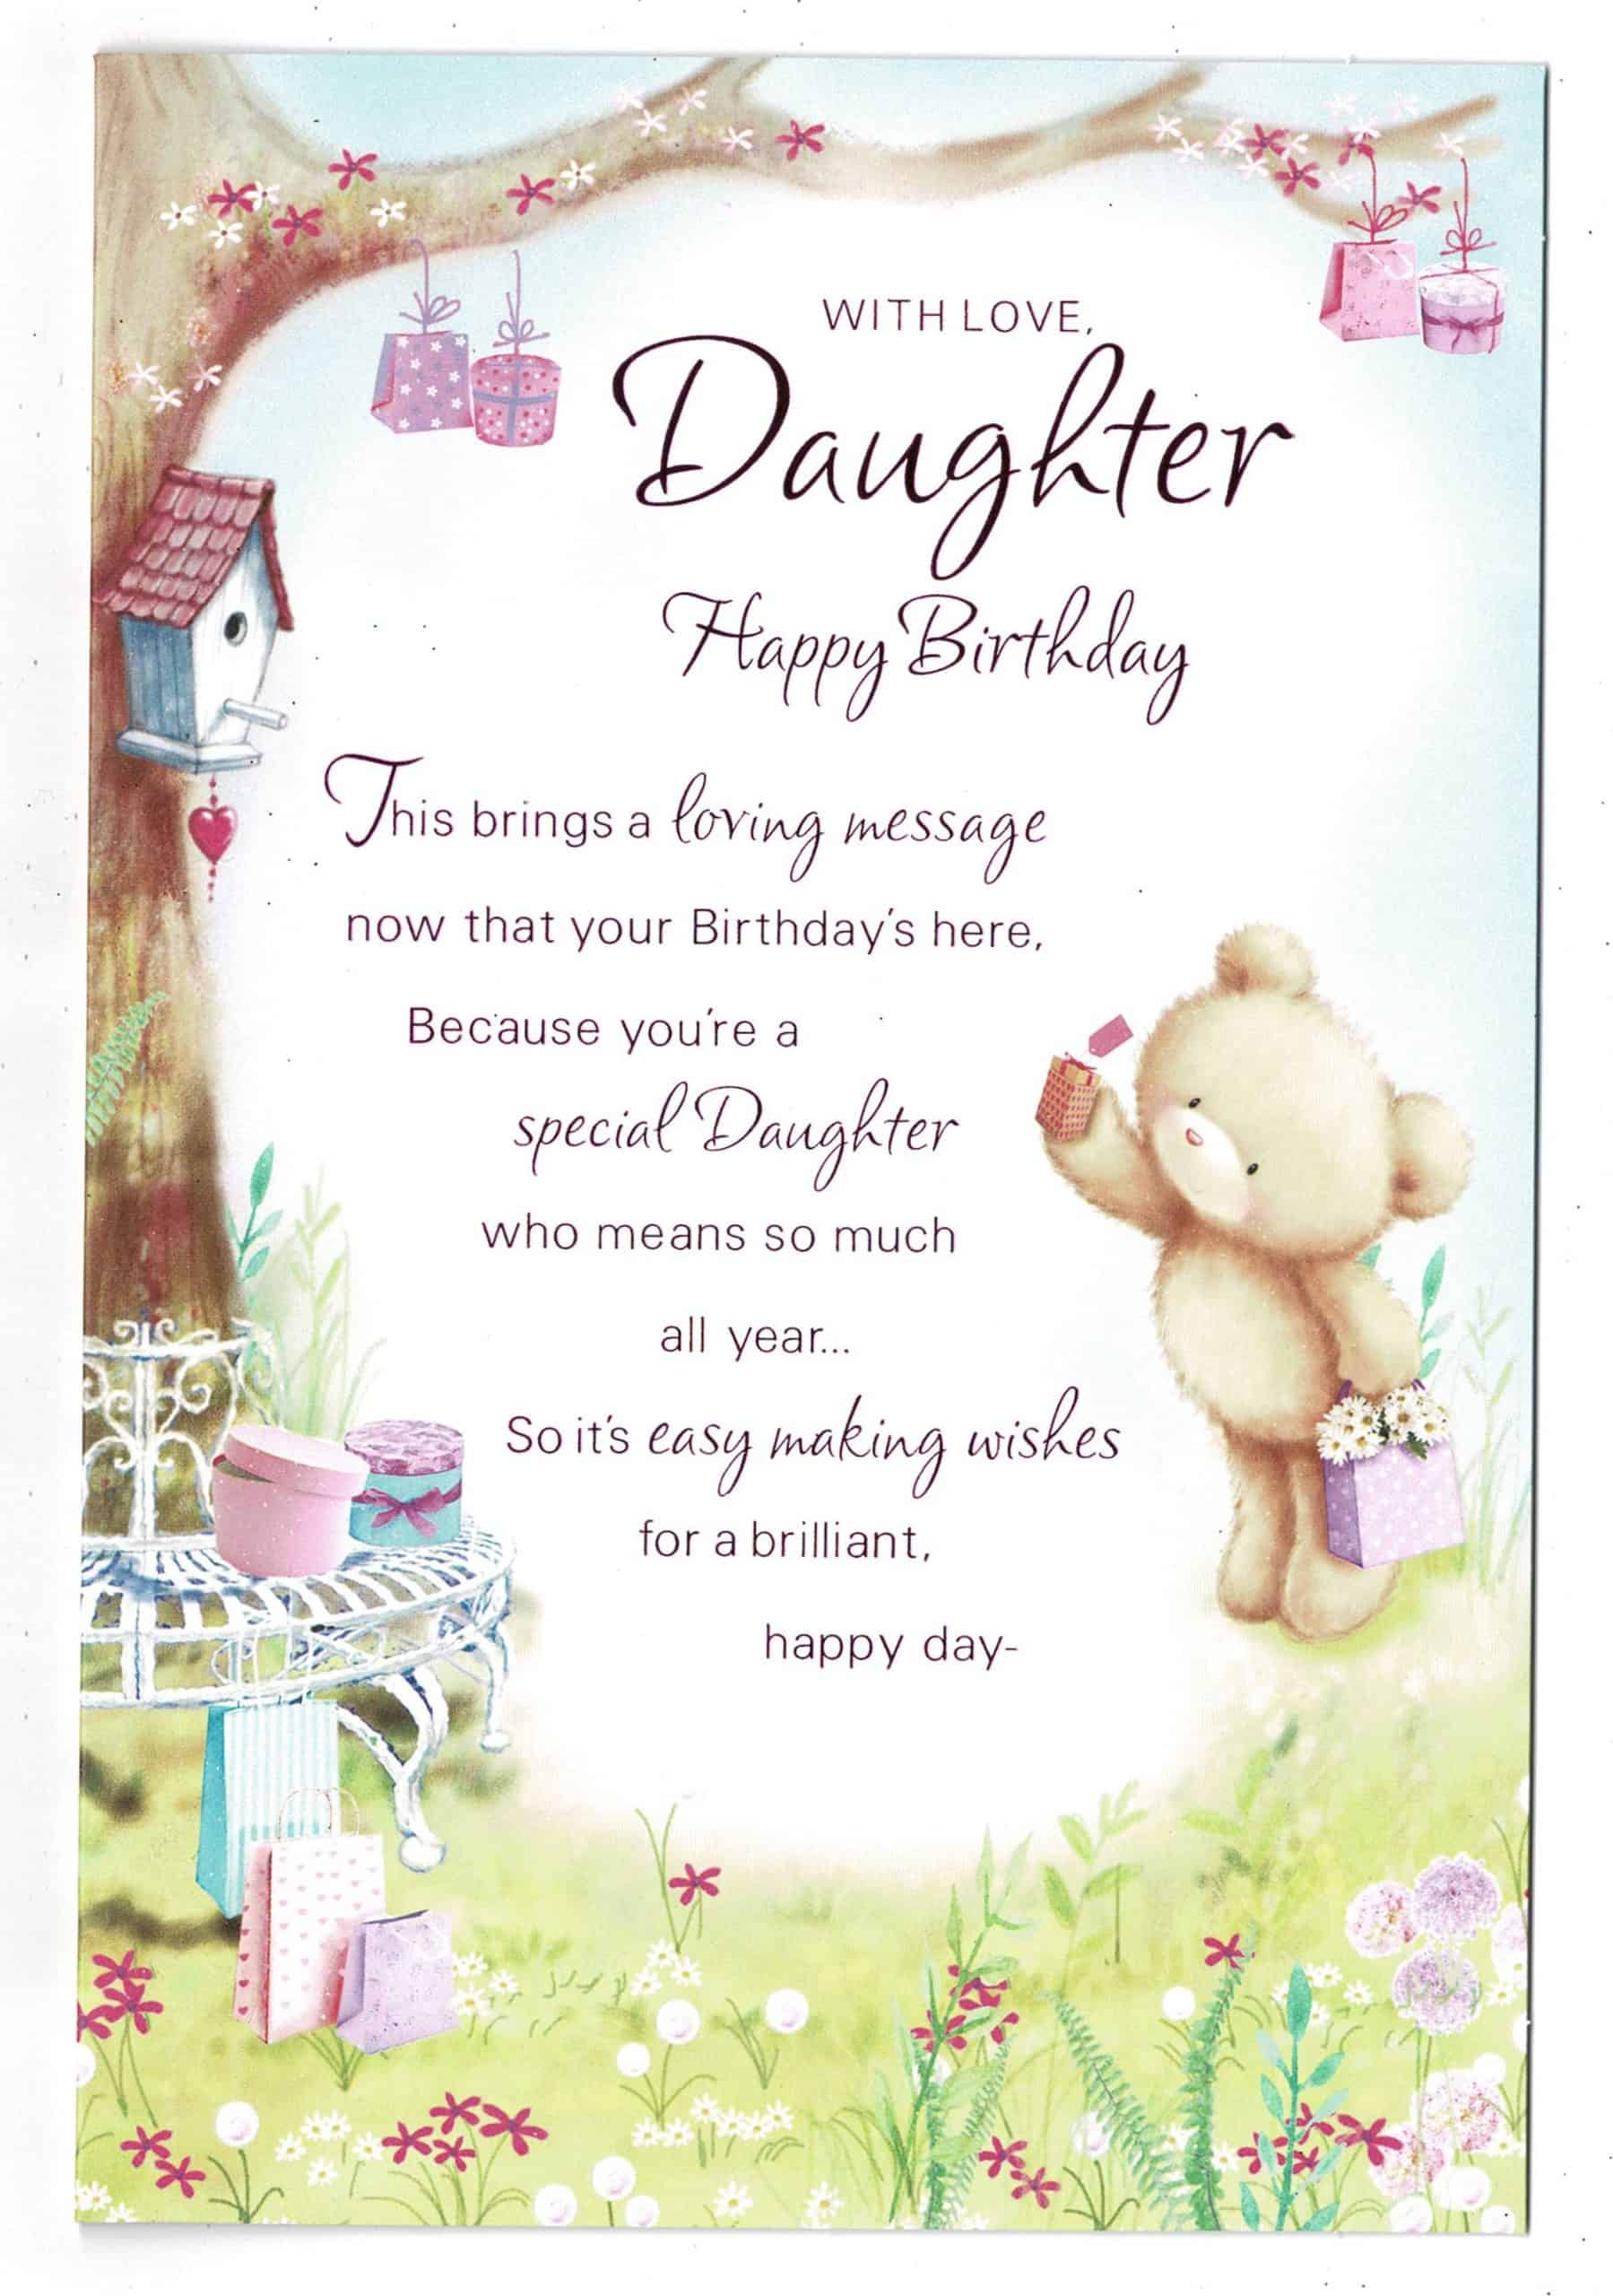 daughter birthday card 'with love daughter happy birthday